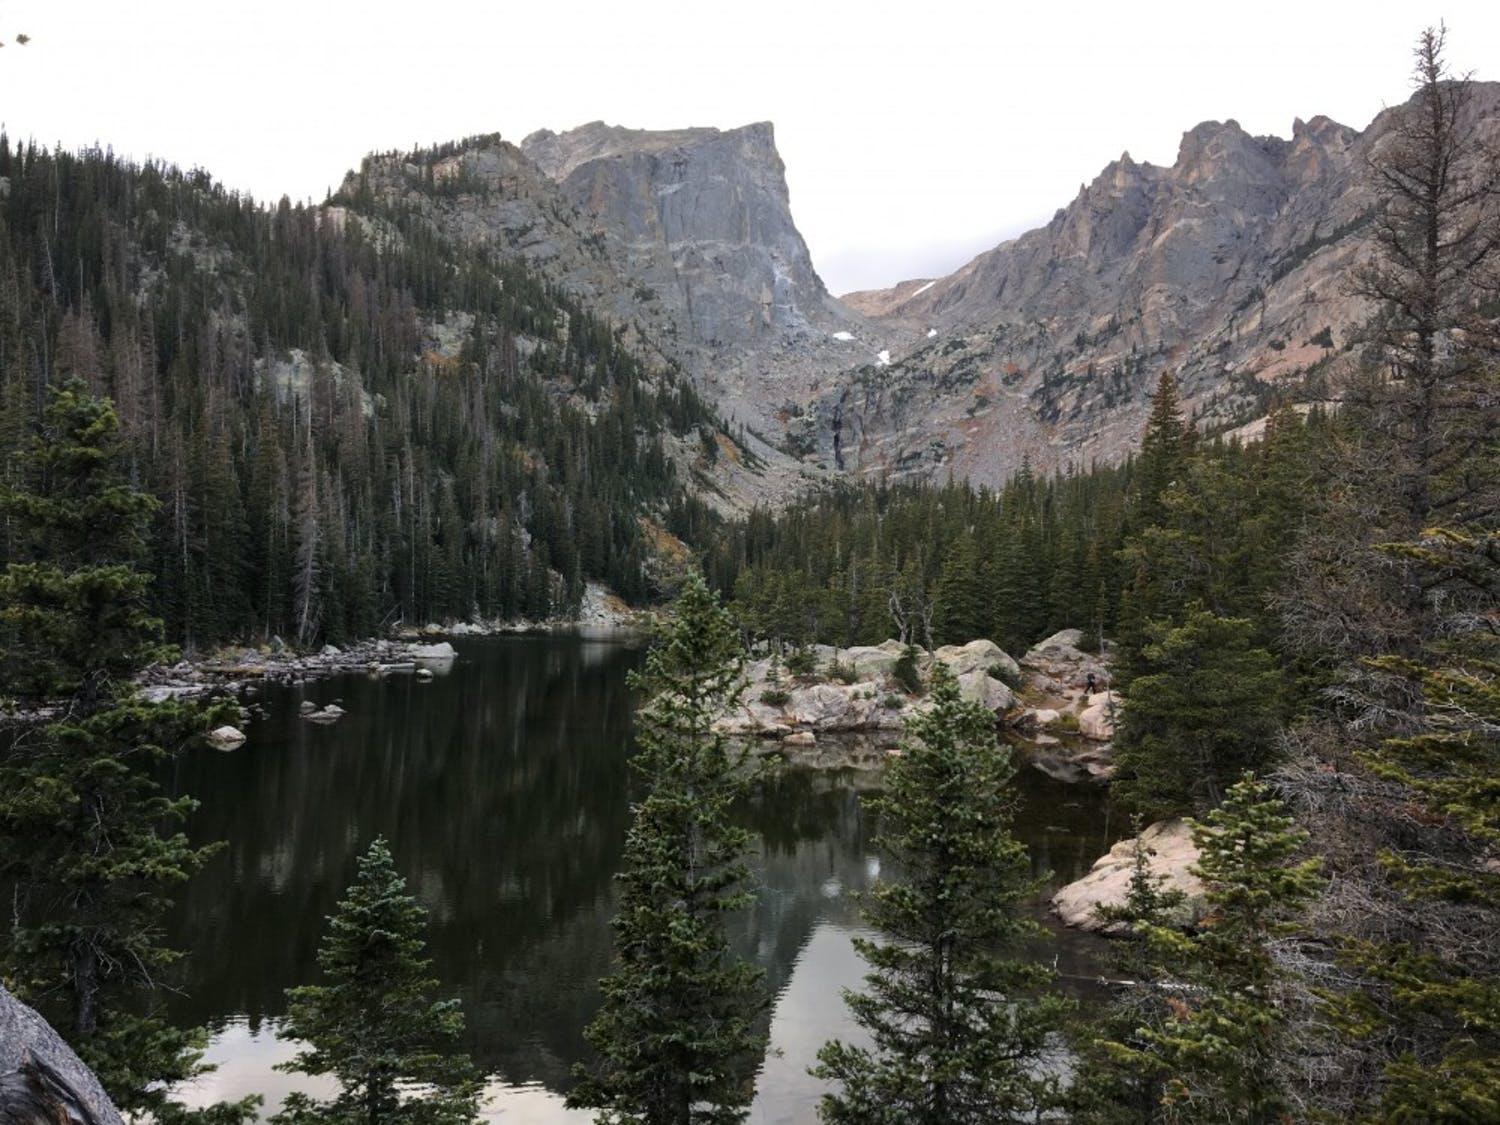 The Rocky Mountain National Park is one of over 400 national parks directed by Jonathan Jarvis. He has been the current director of the National Park Service since 2009.